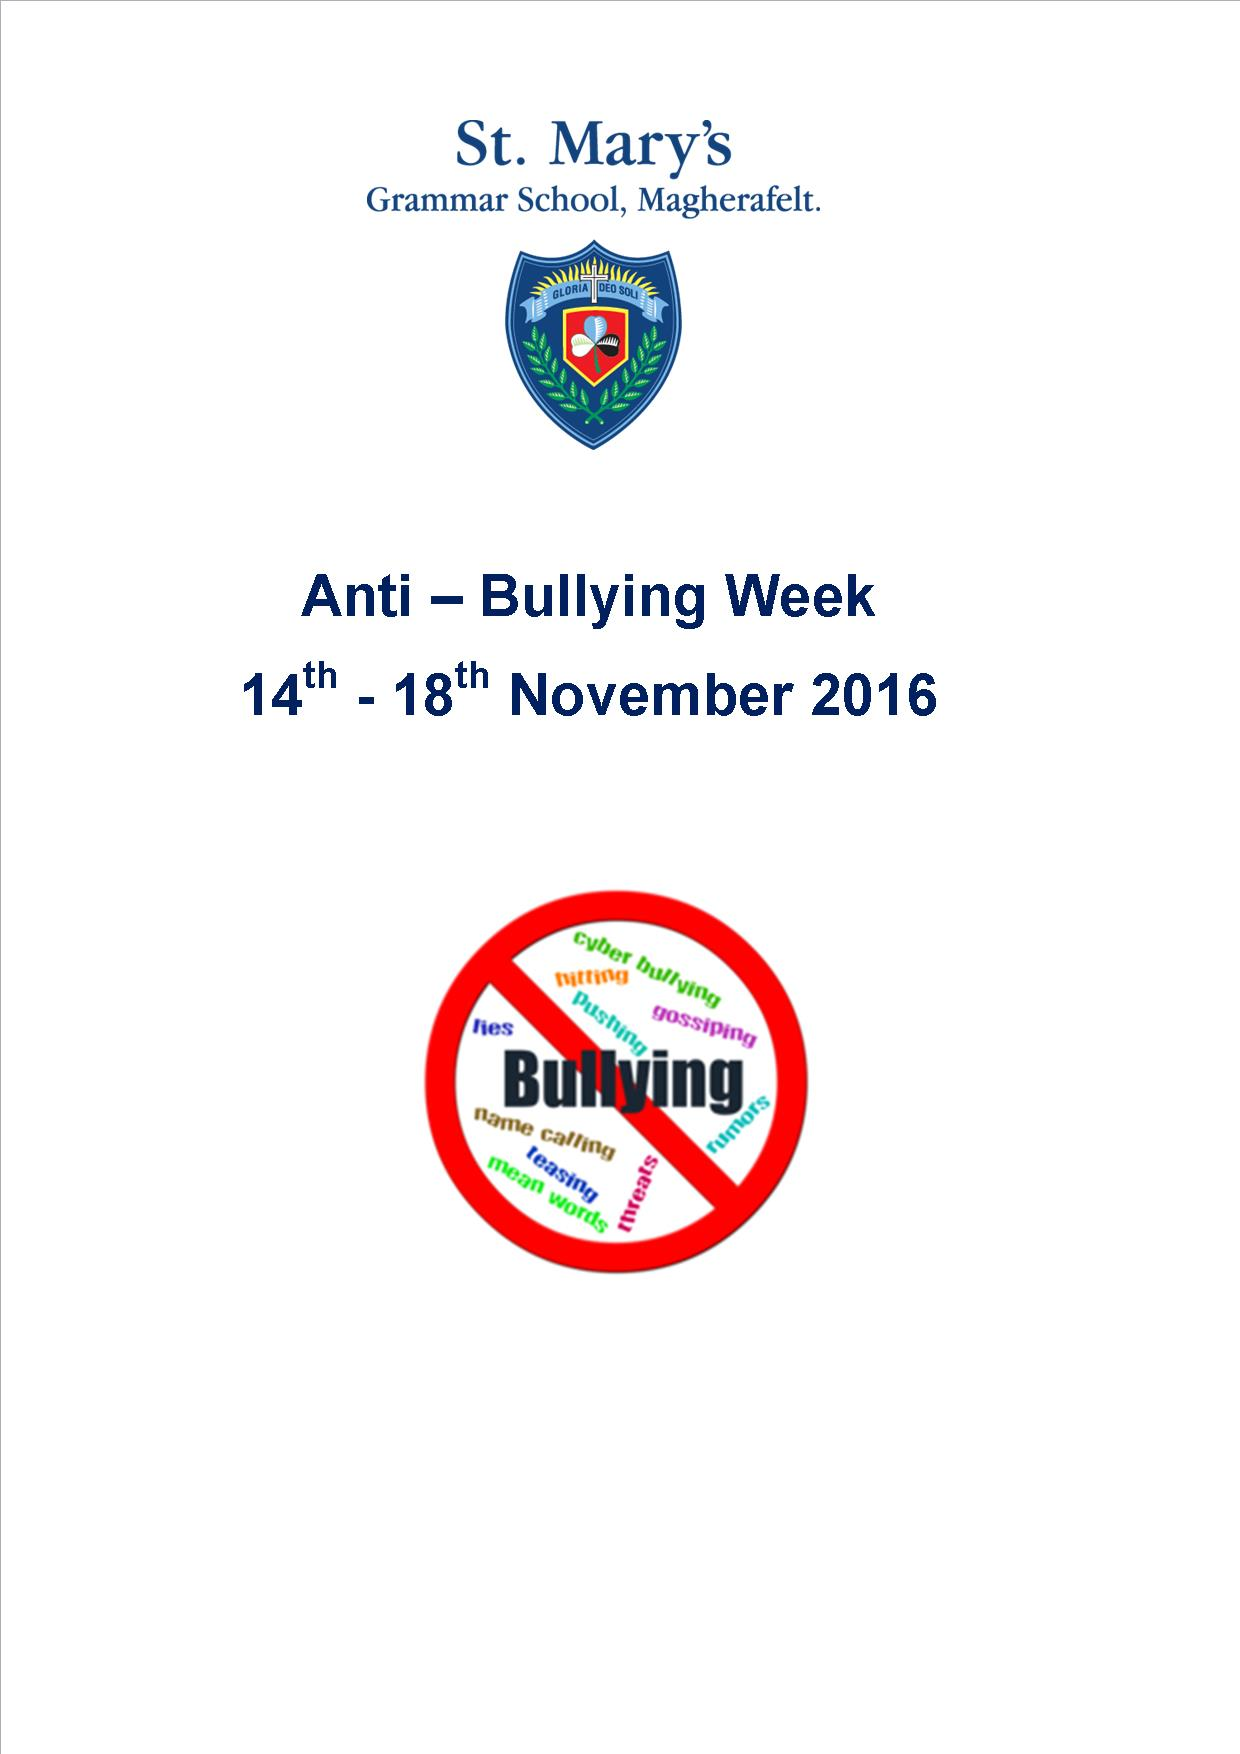 Anti-Bullying Week 14th - 18th November 2016